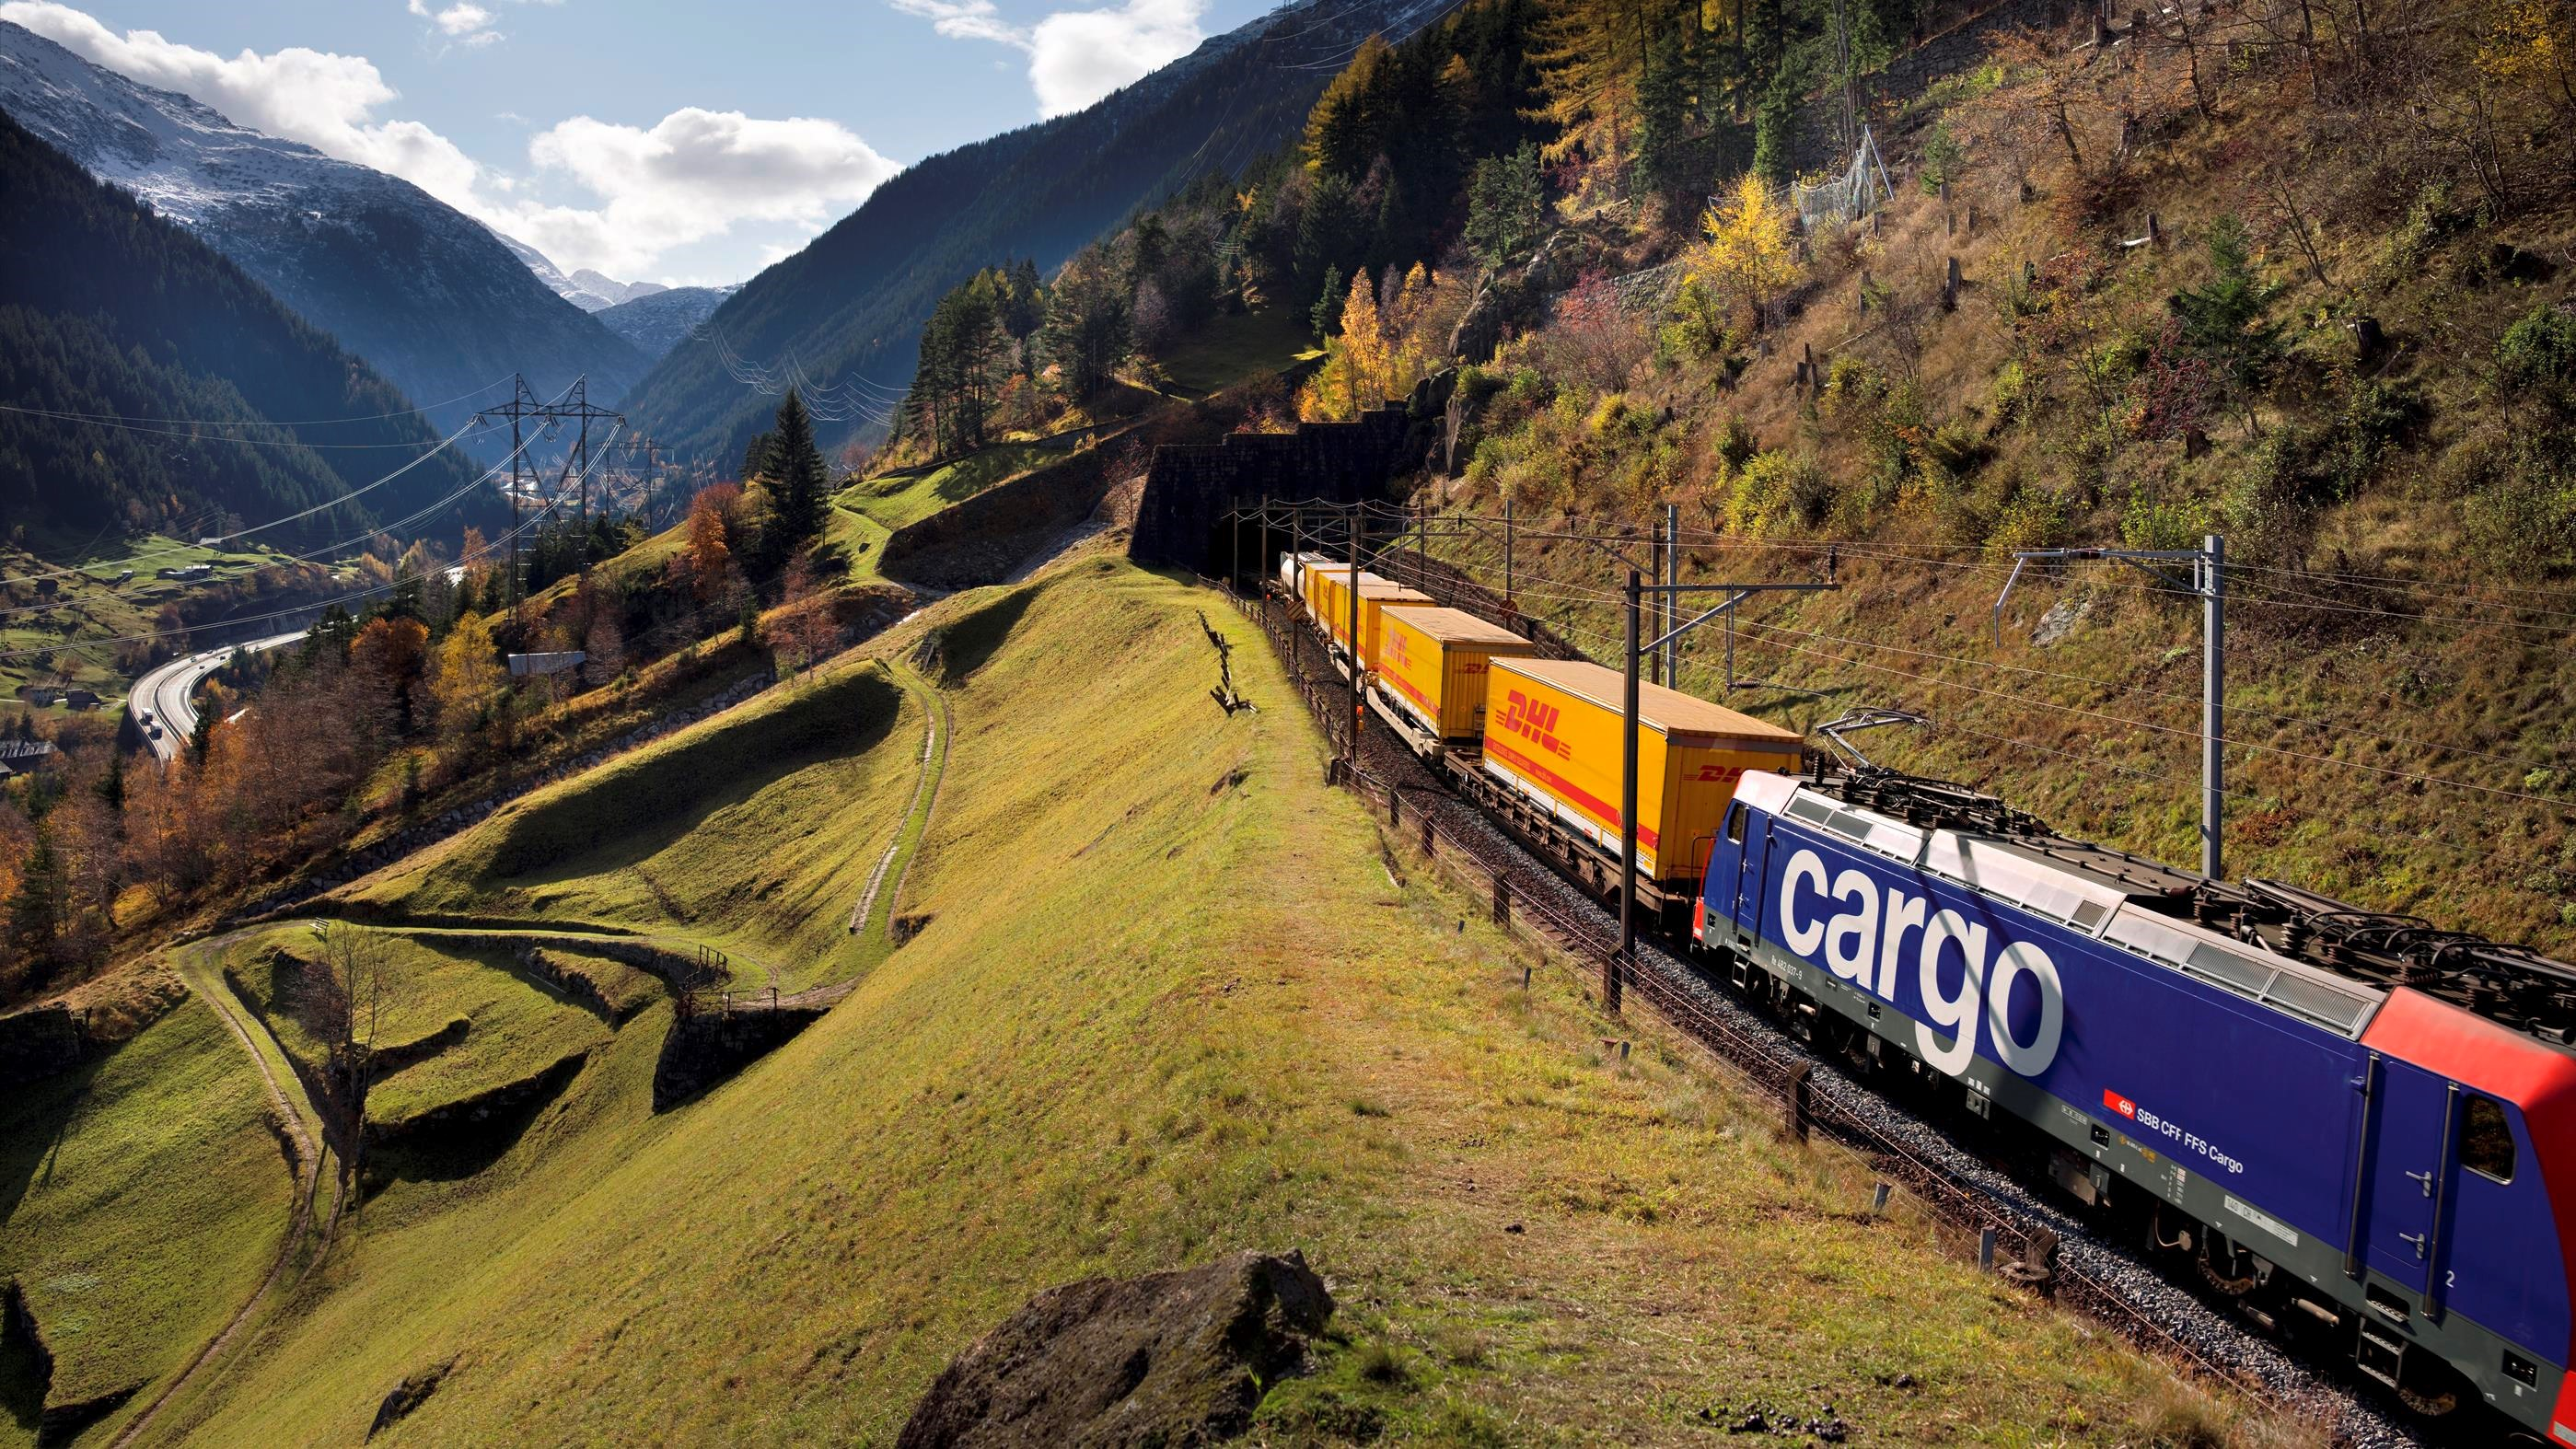 Via Trans-Siberian from Japan to Europe in just 11 days 1